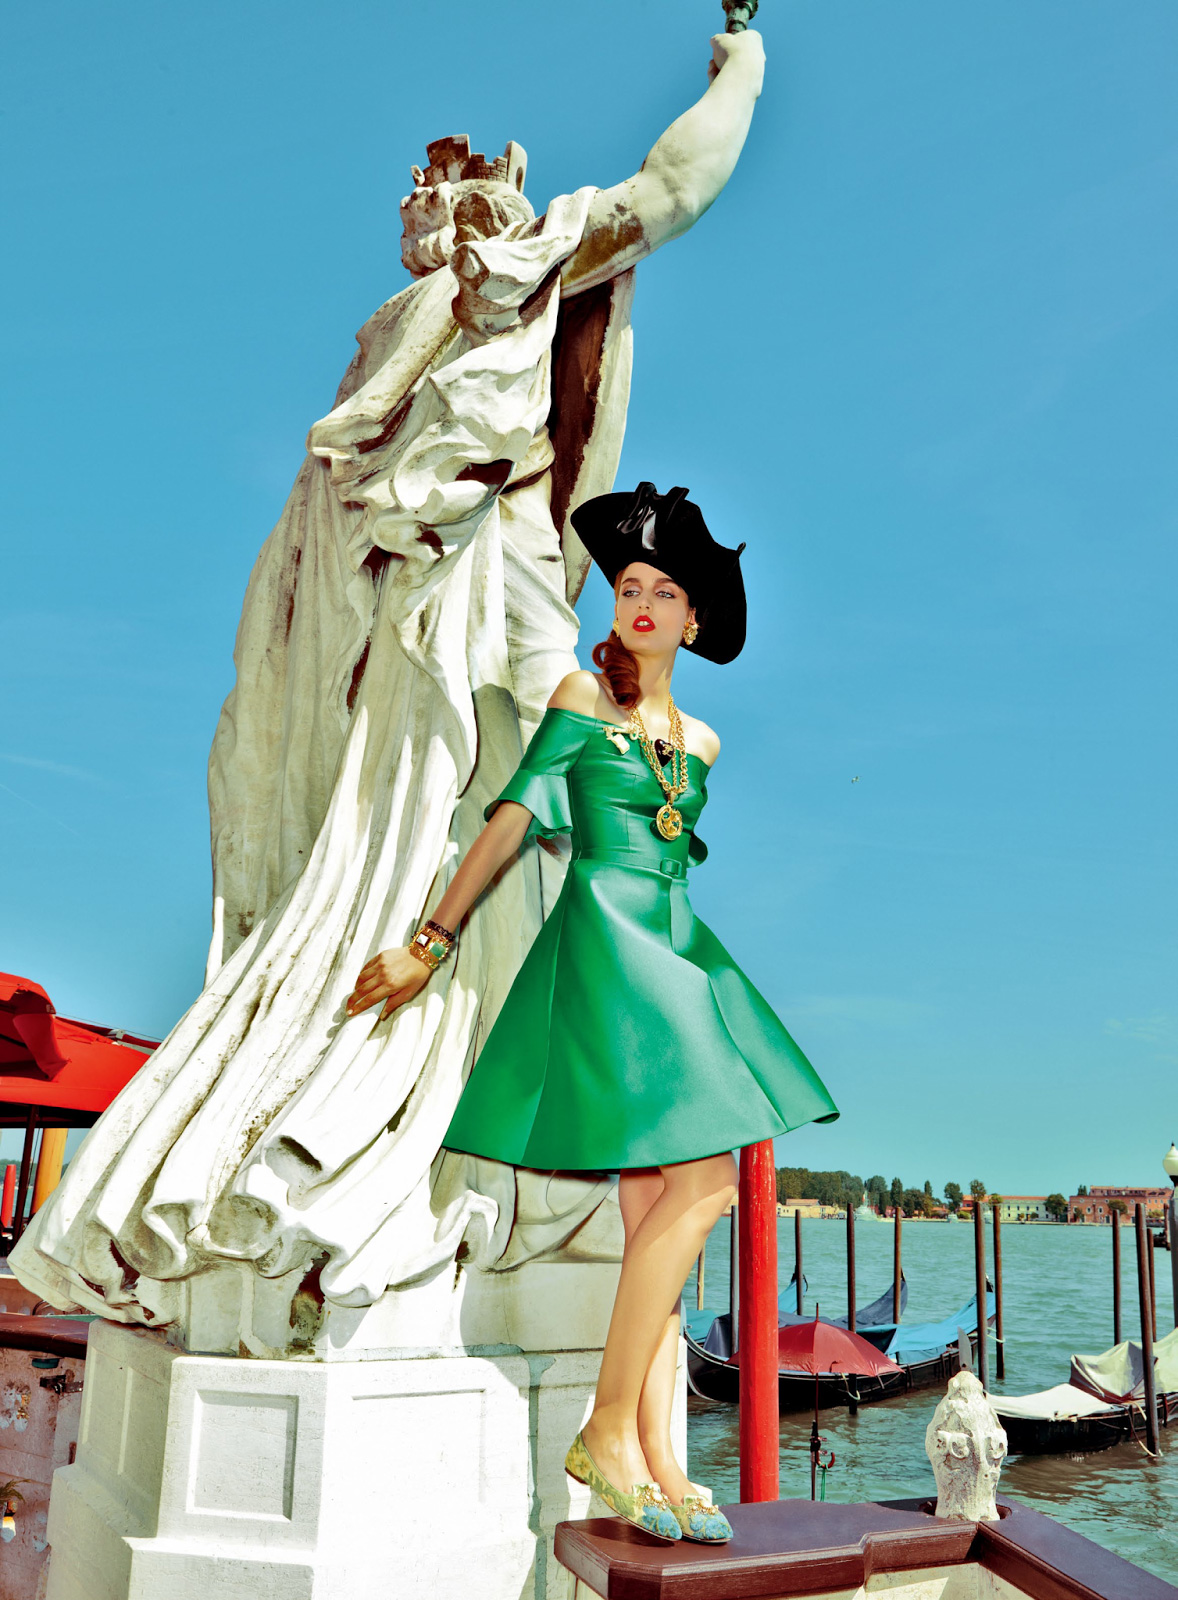 Zuzanna-Bijoch-by-Pierpaolo-Ferrari-for-Vogue-Japan-February-2014-(My-Fascination-with-Venice)-(10)